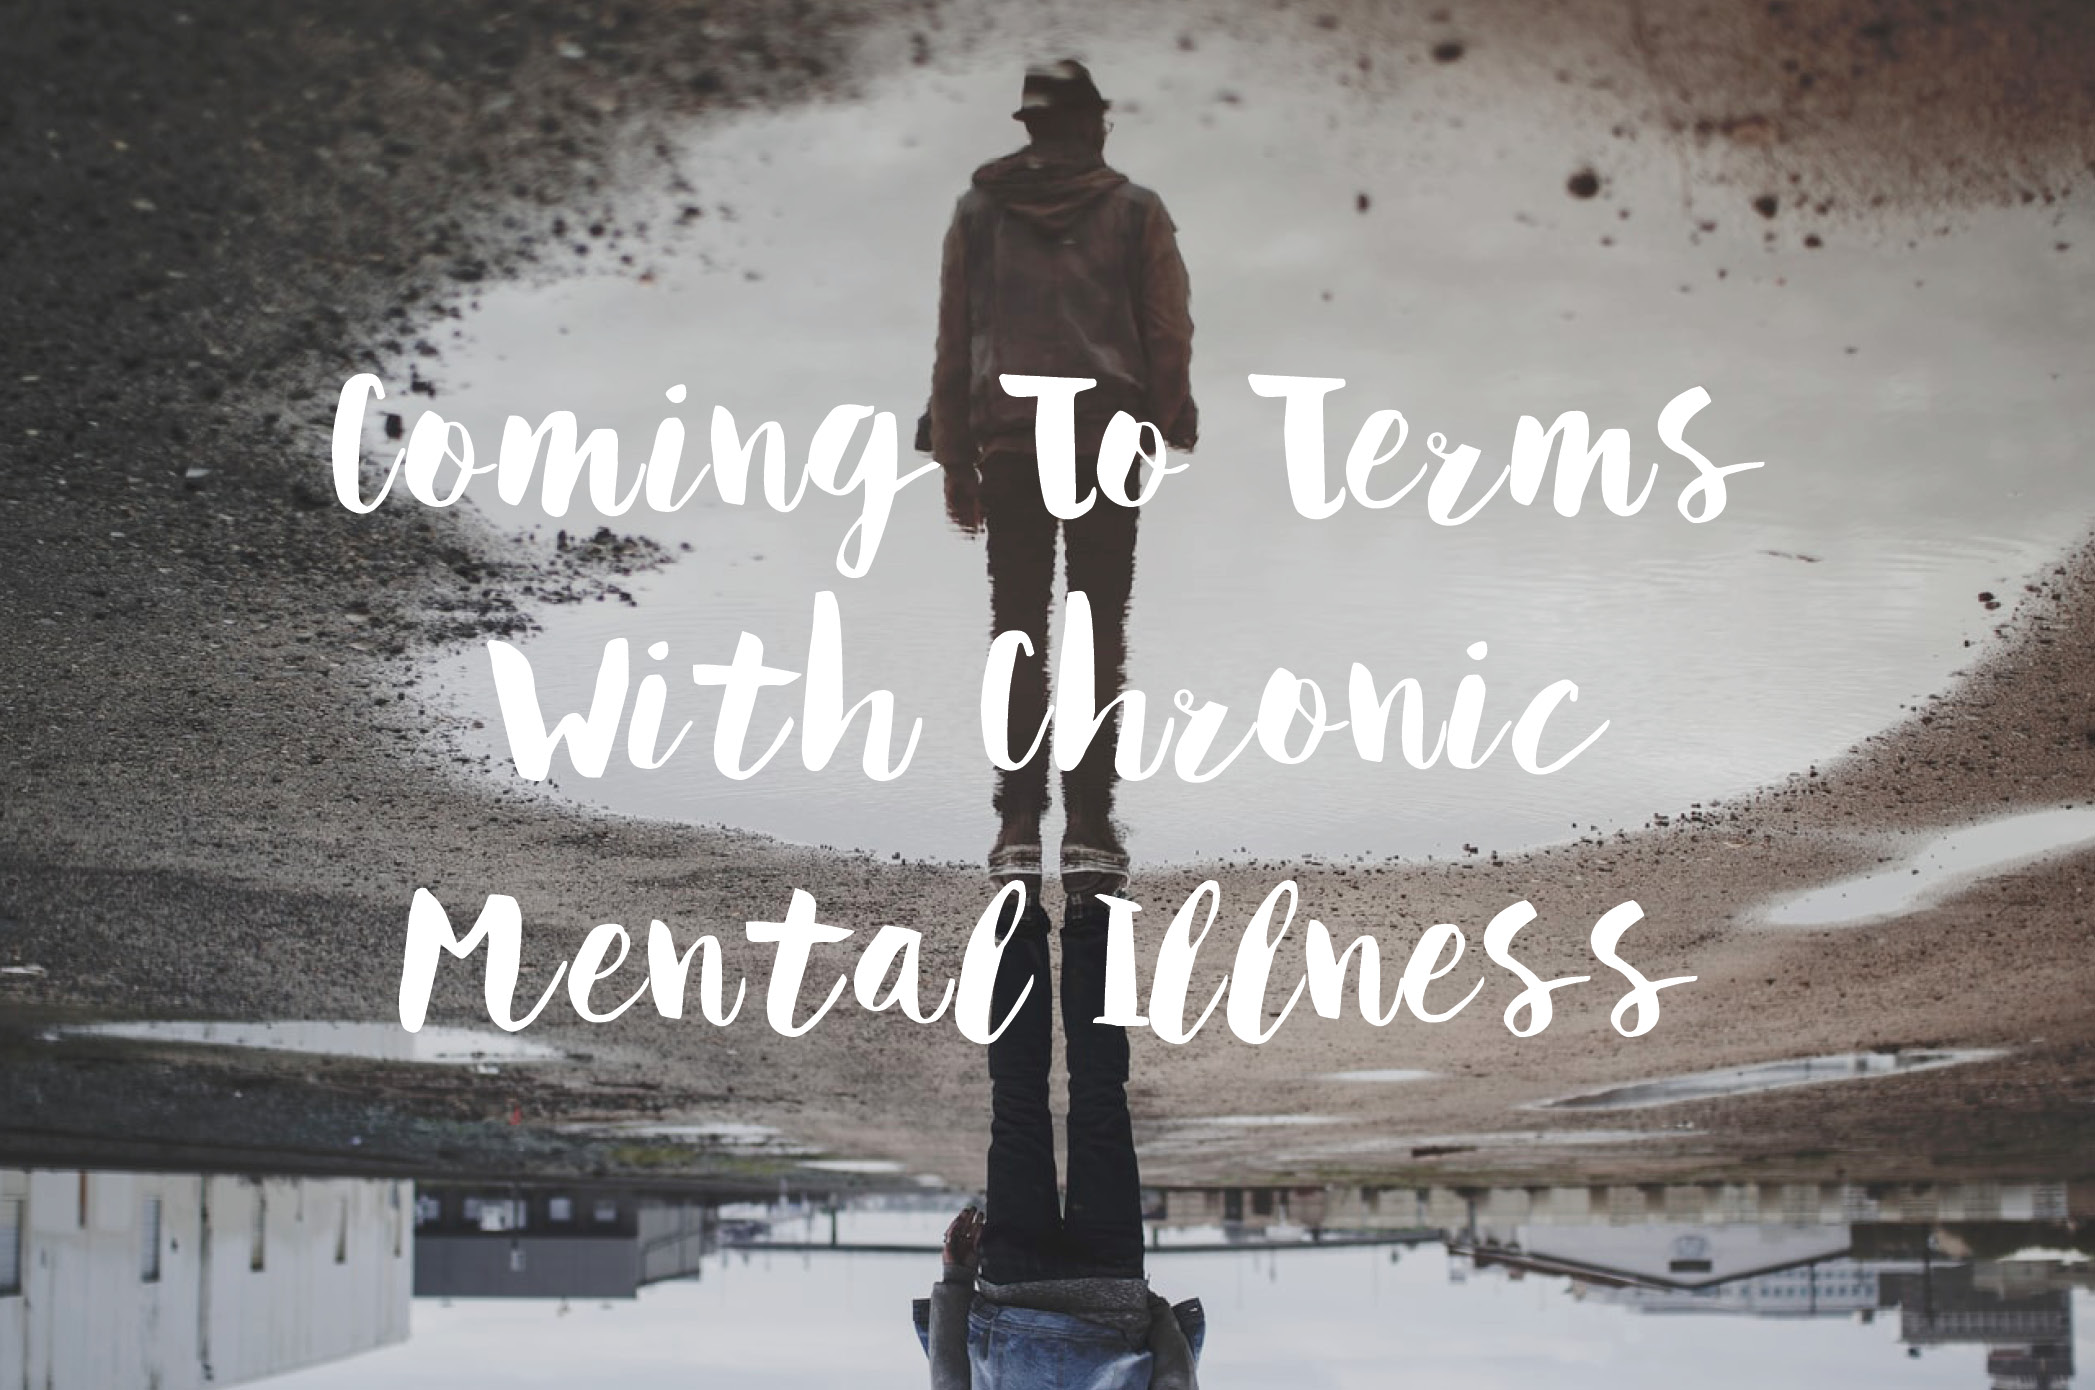 Coming To Terms With Chronic Mental Illness